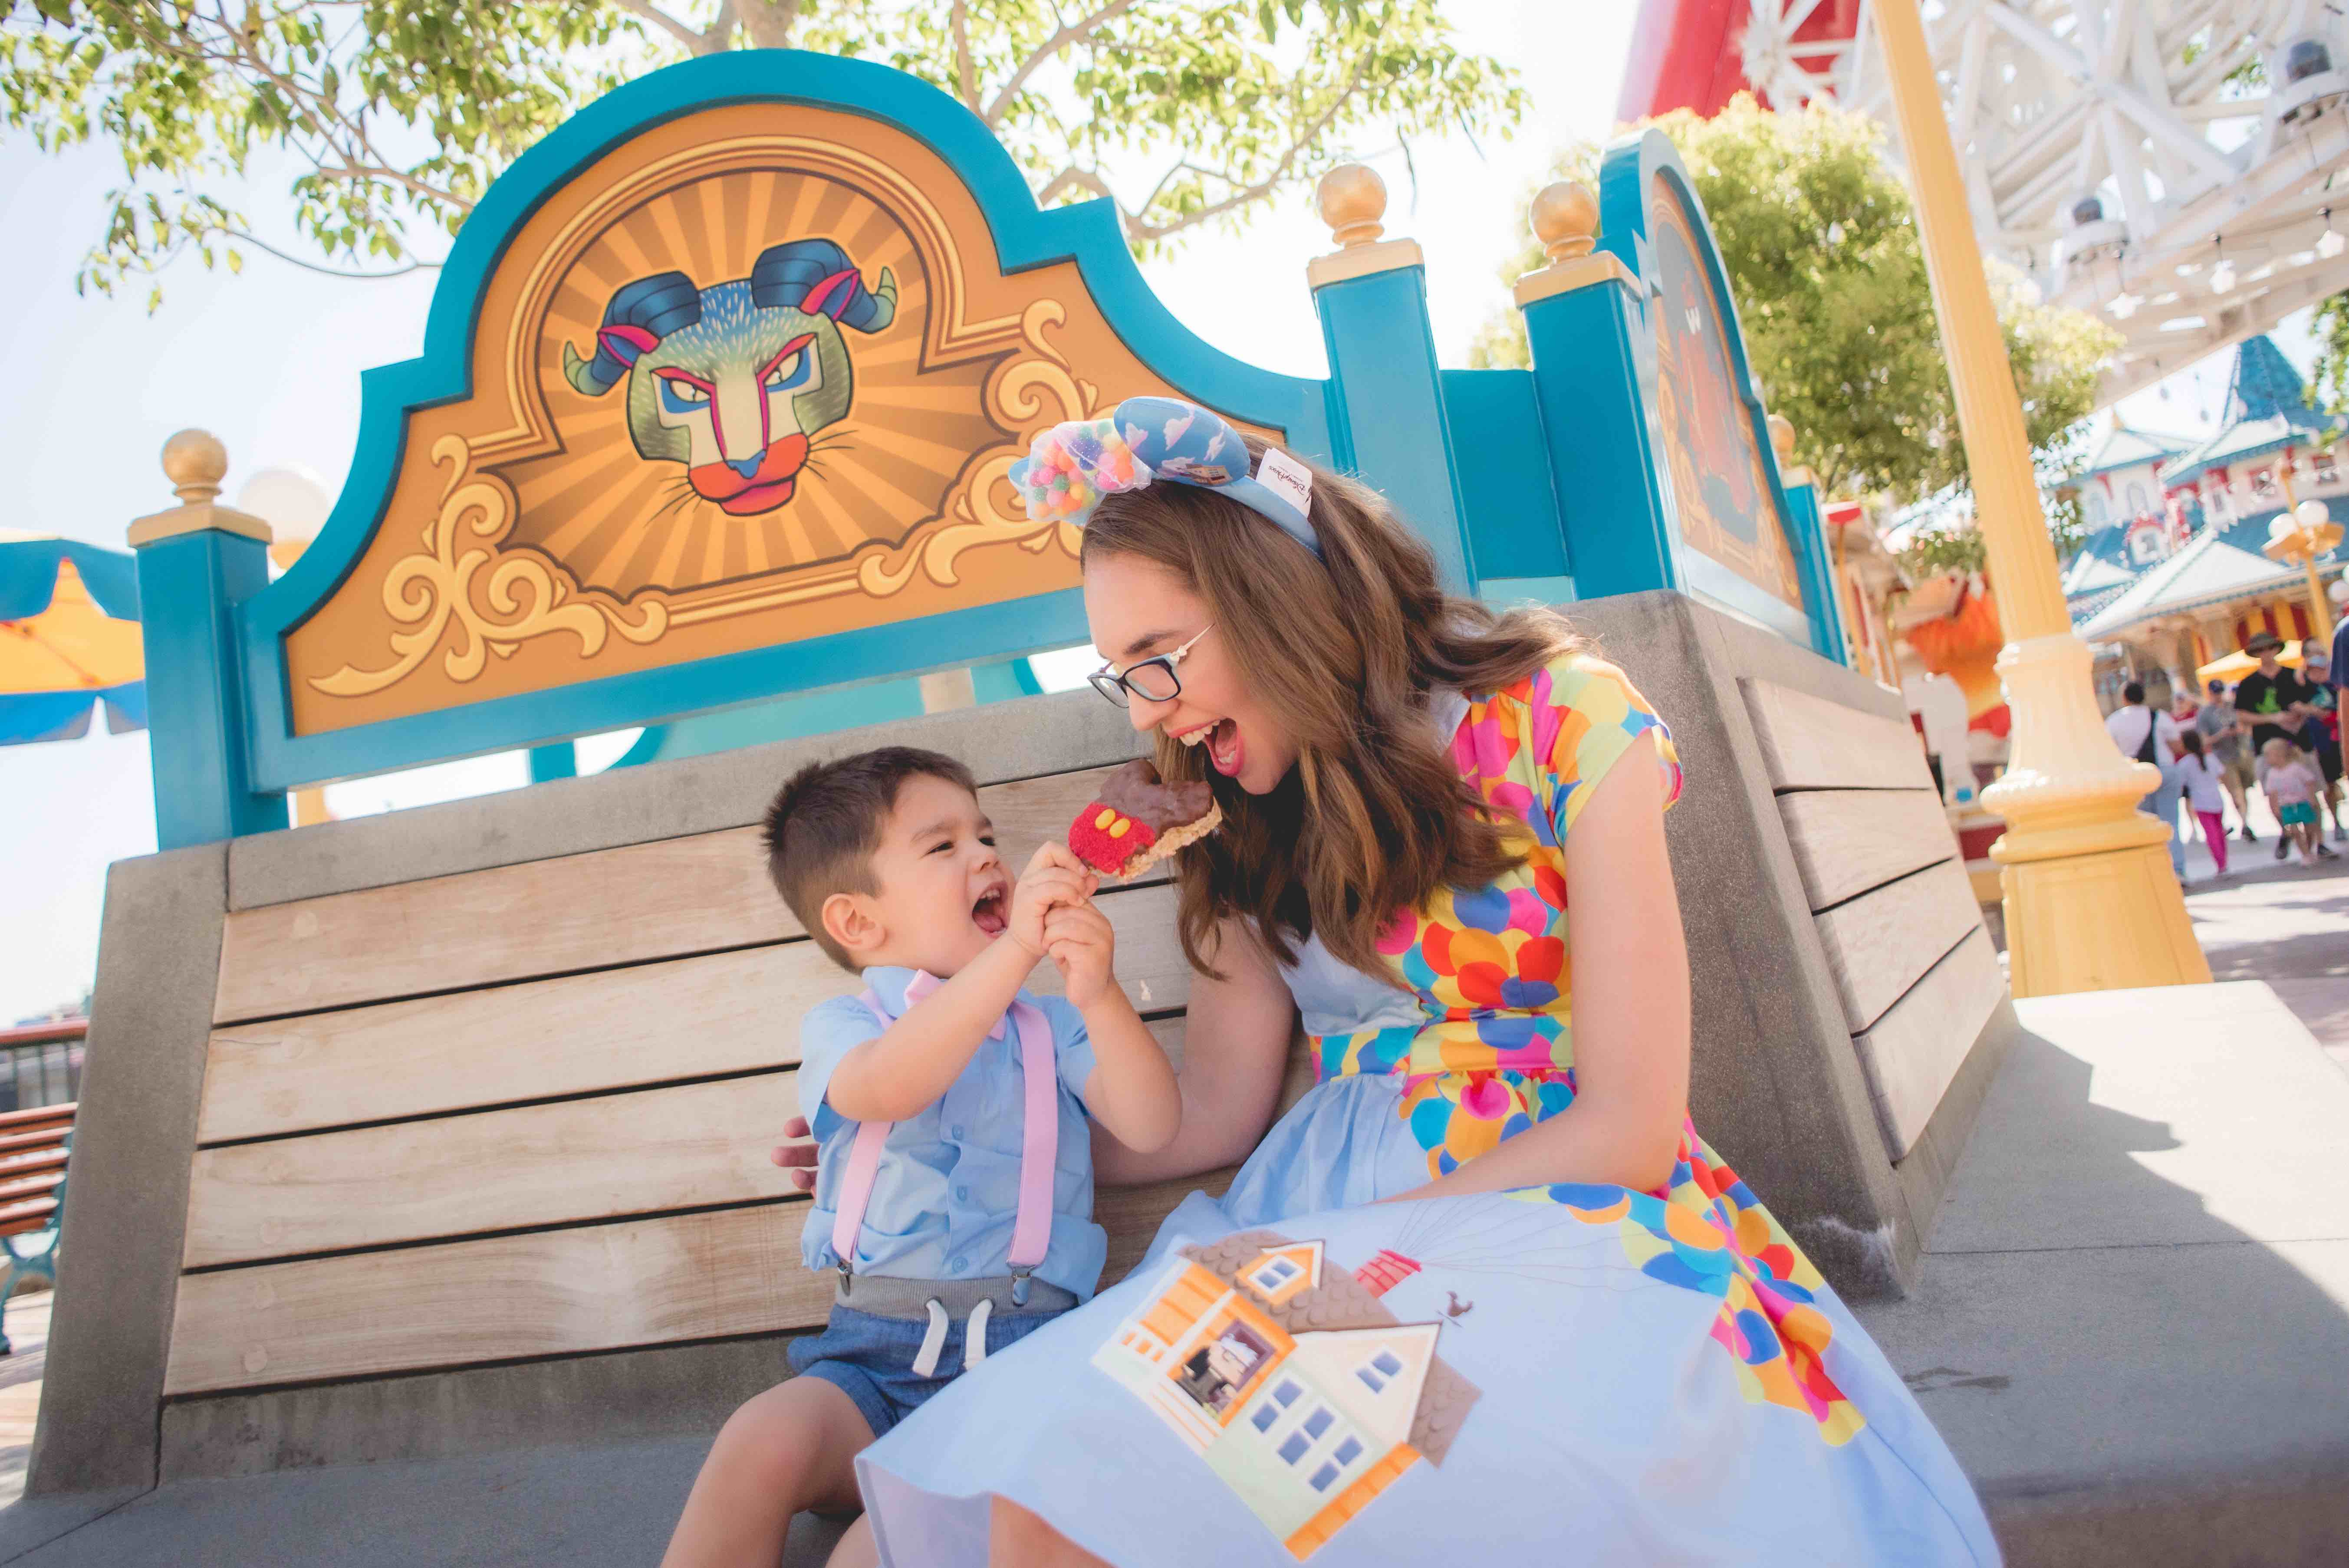 Find out all the best Disney hacks and tips for Disney vacations with kids here at Marcie and the Mouse